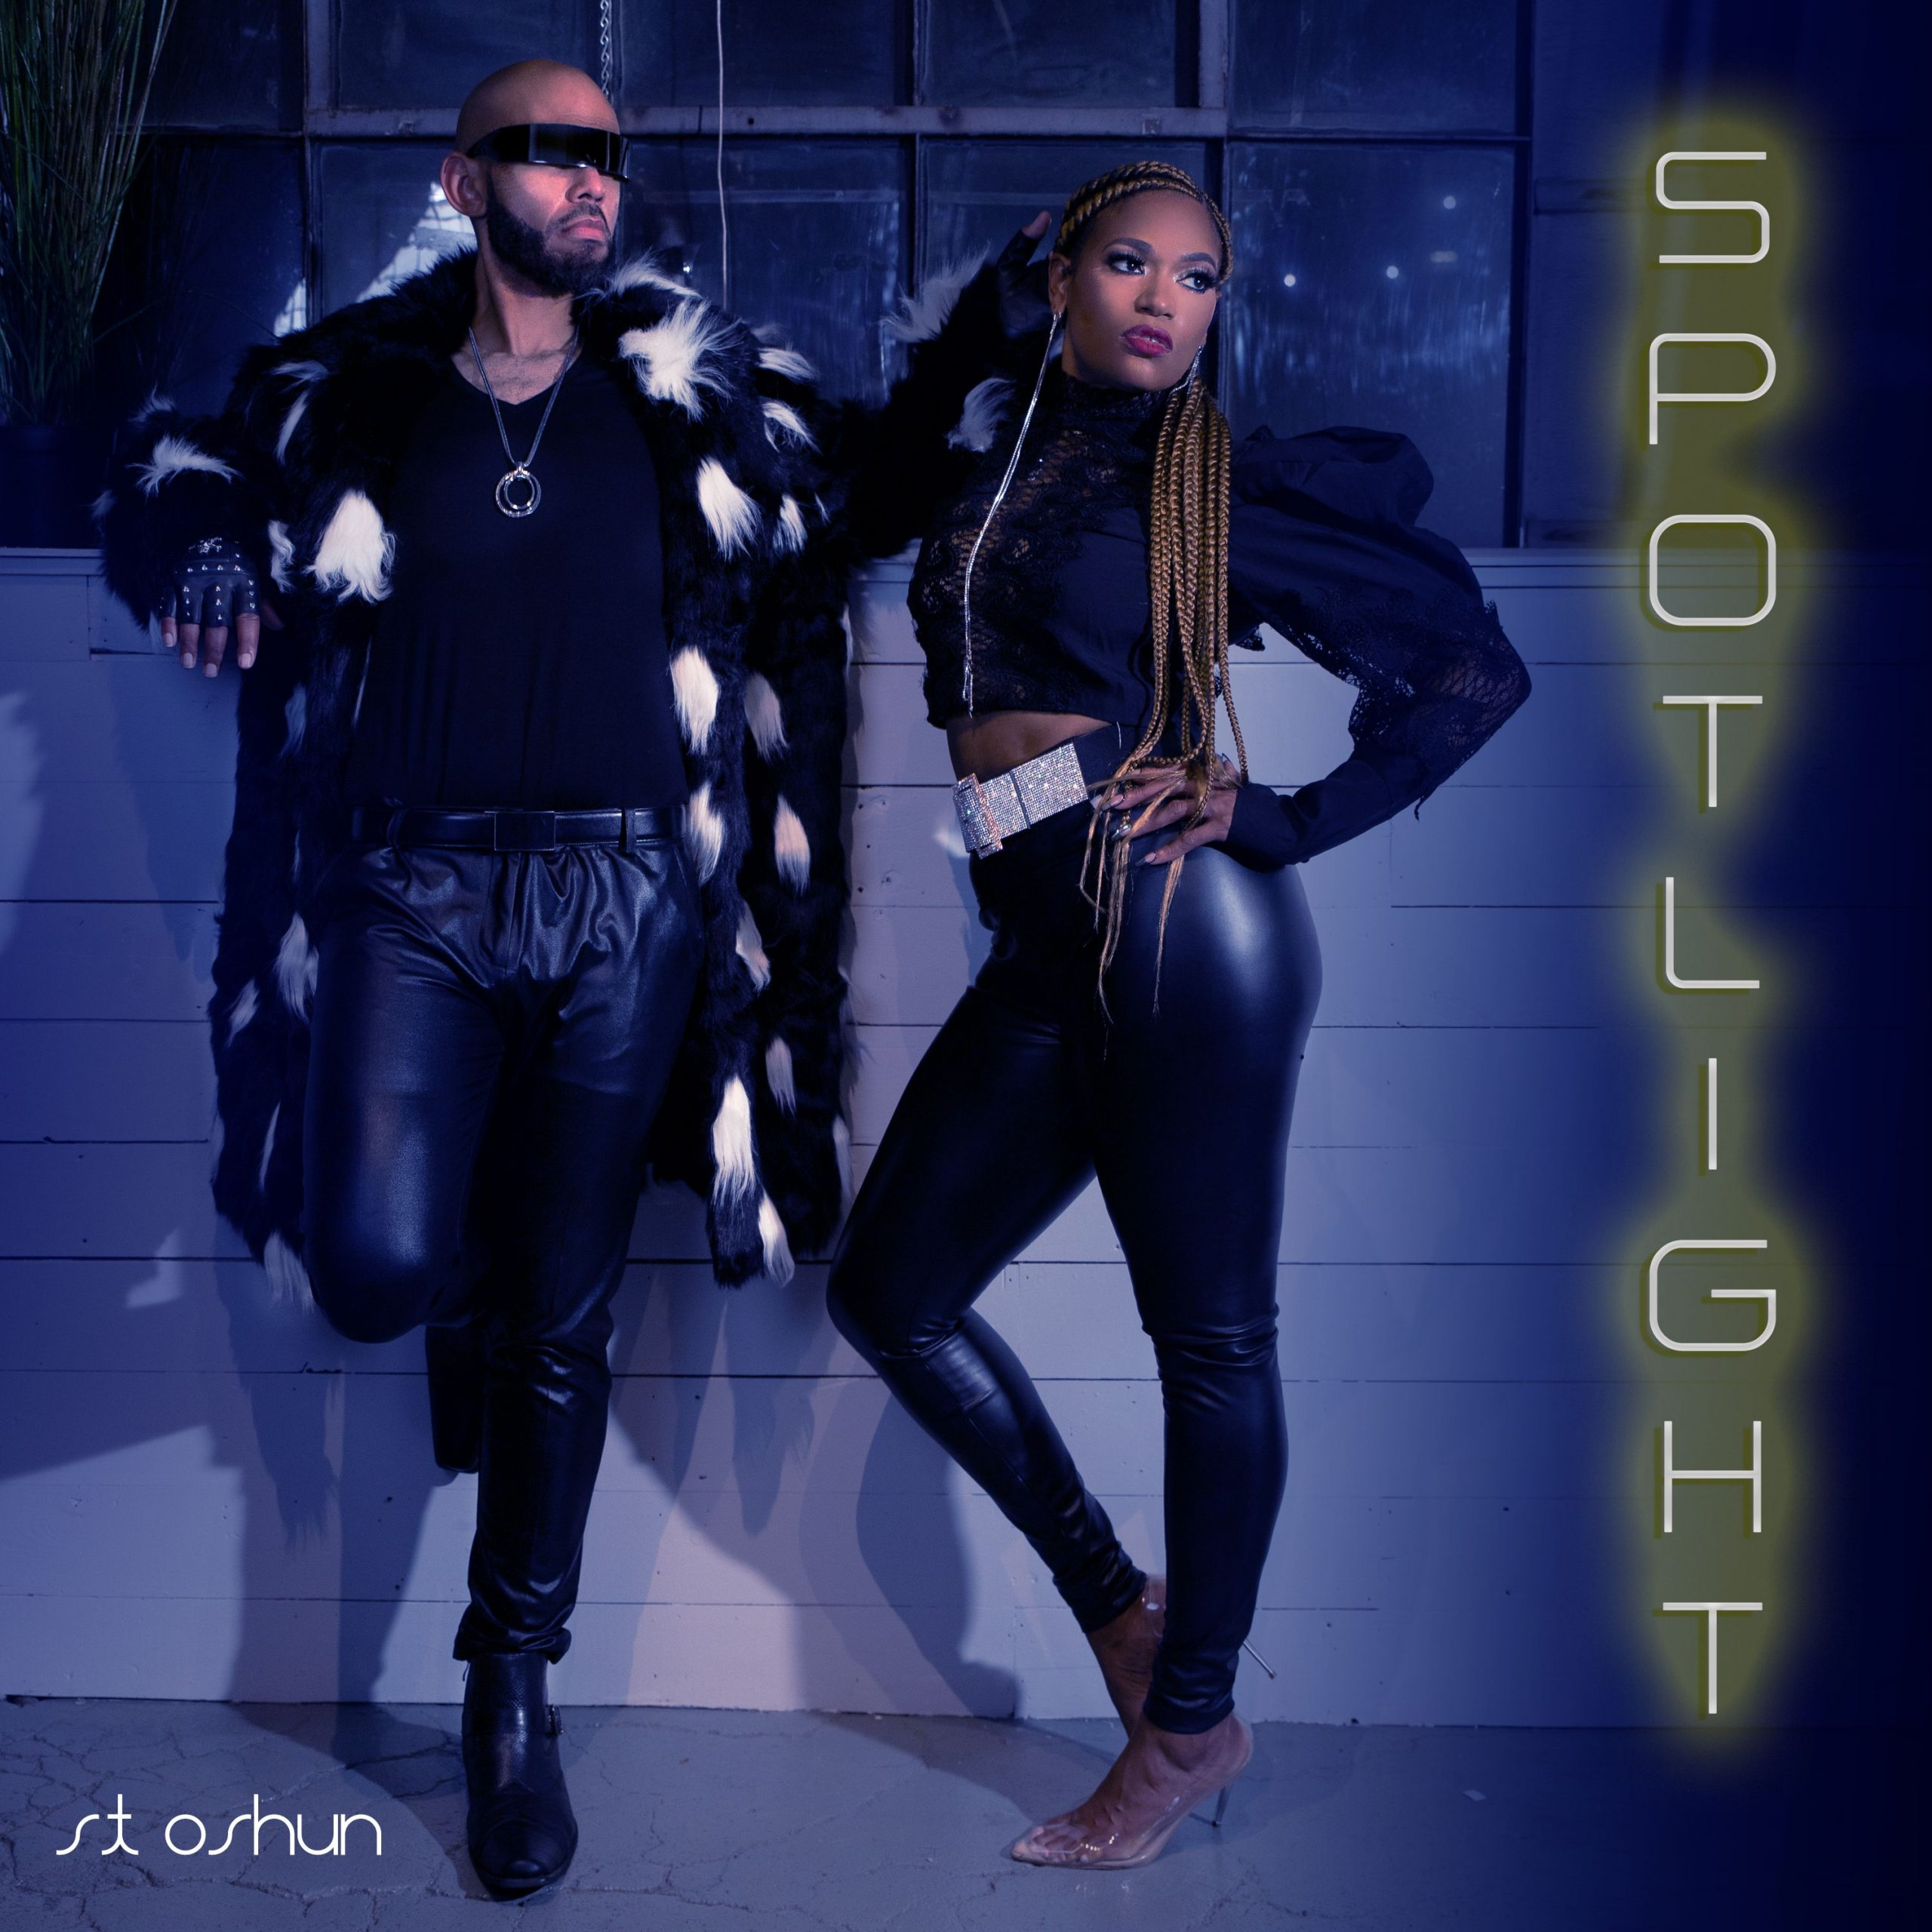 """You are currently viewing The Daily Feature: What Should You Take Away From St Oshun's """"Spotlight"""""""